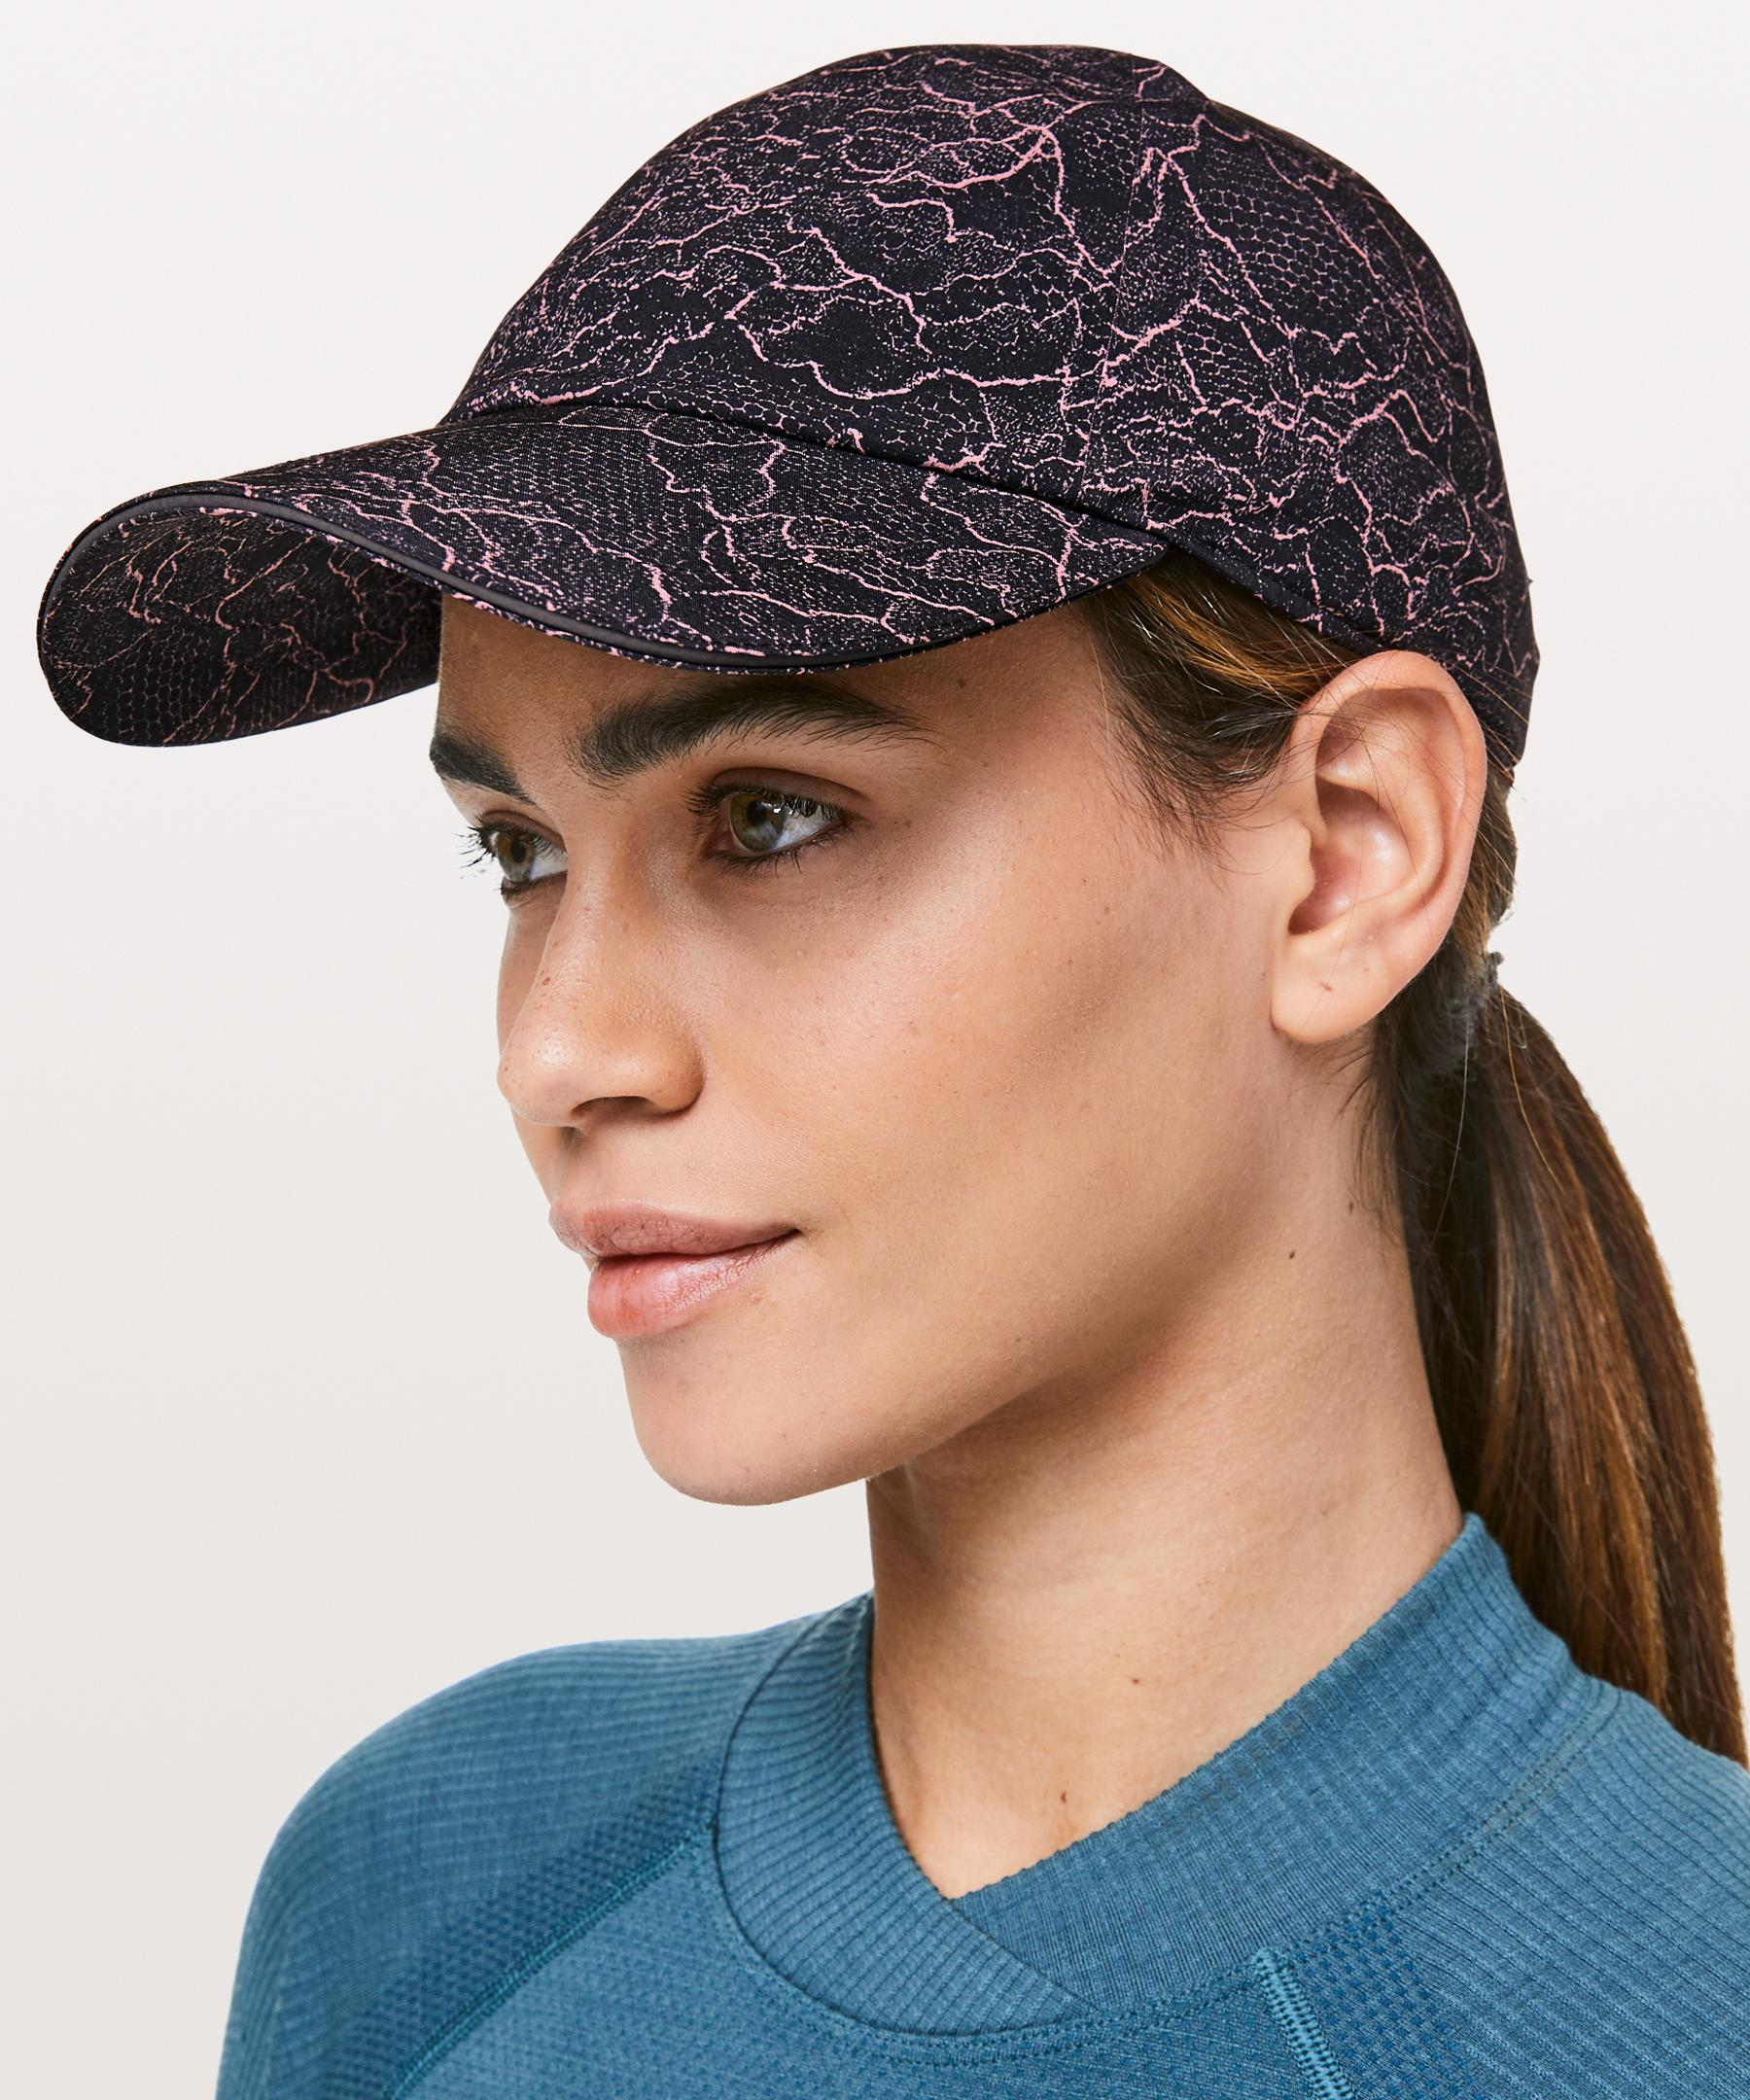 21619ae97b3 Lyst lululemon athletica baller hat run in black jpg 1800x2160 Baller hat